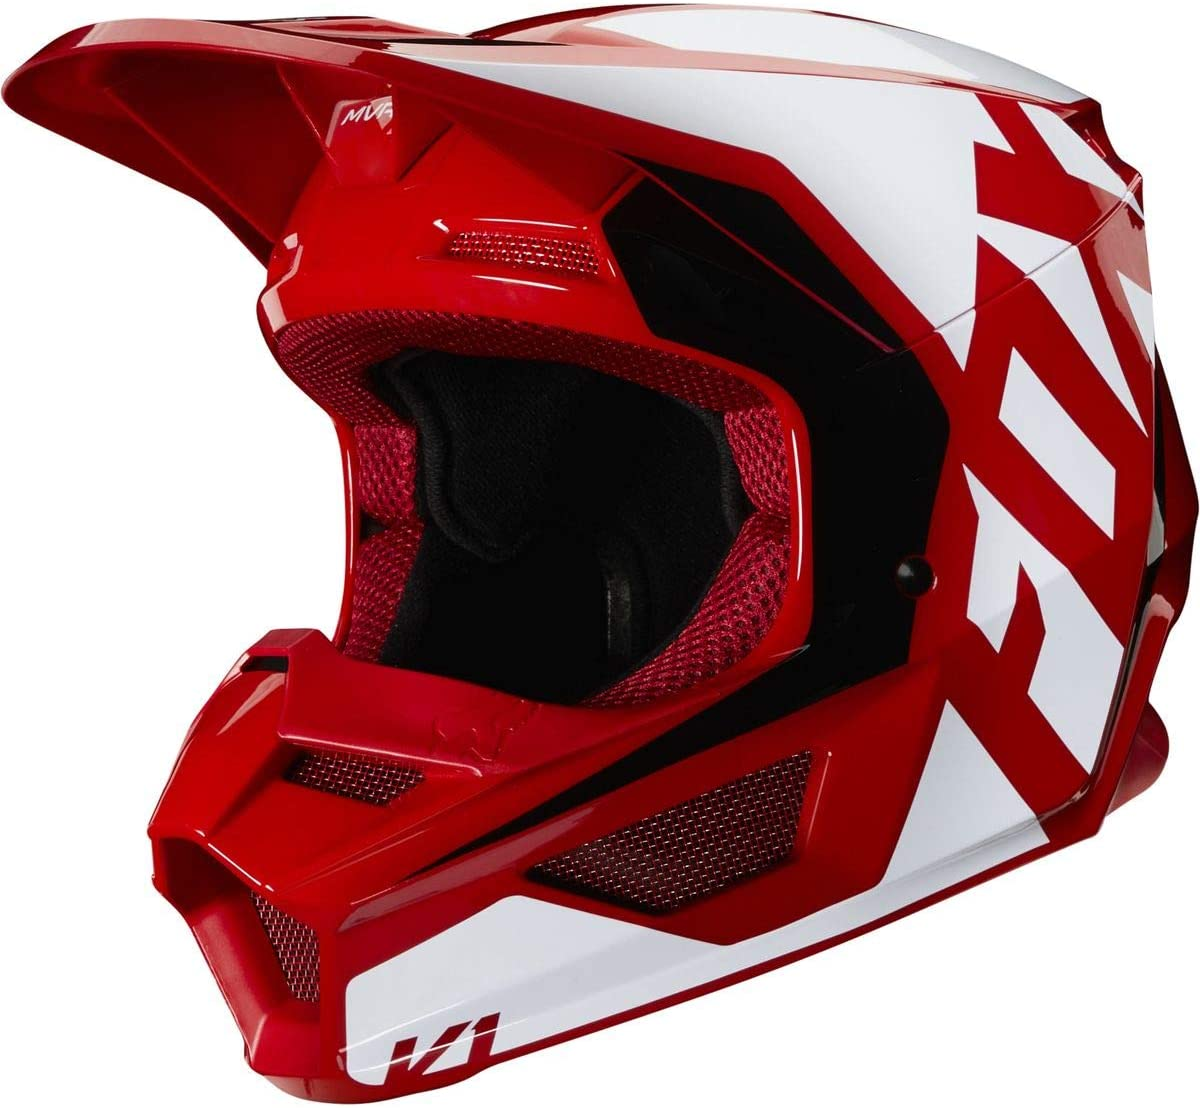 Fox Racing Prix Youth V1 Off-Road Motorcycle Helmet - Flame Red/Large